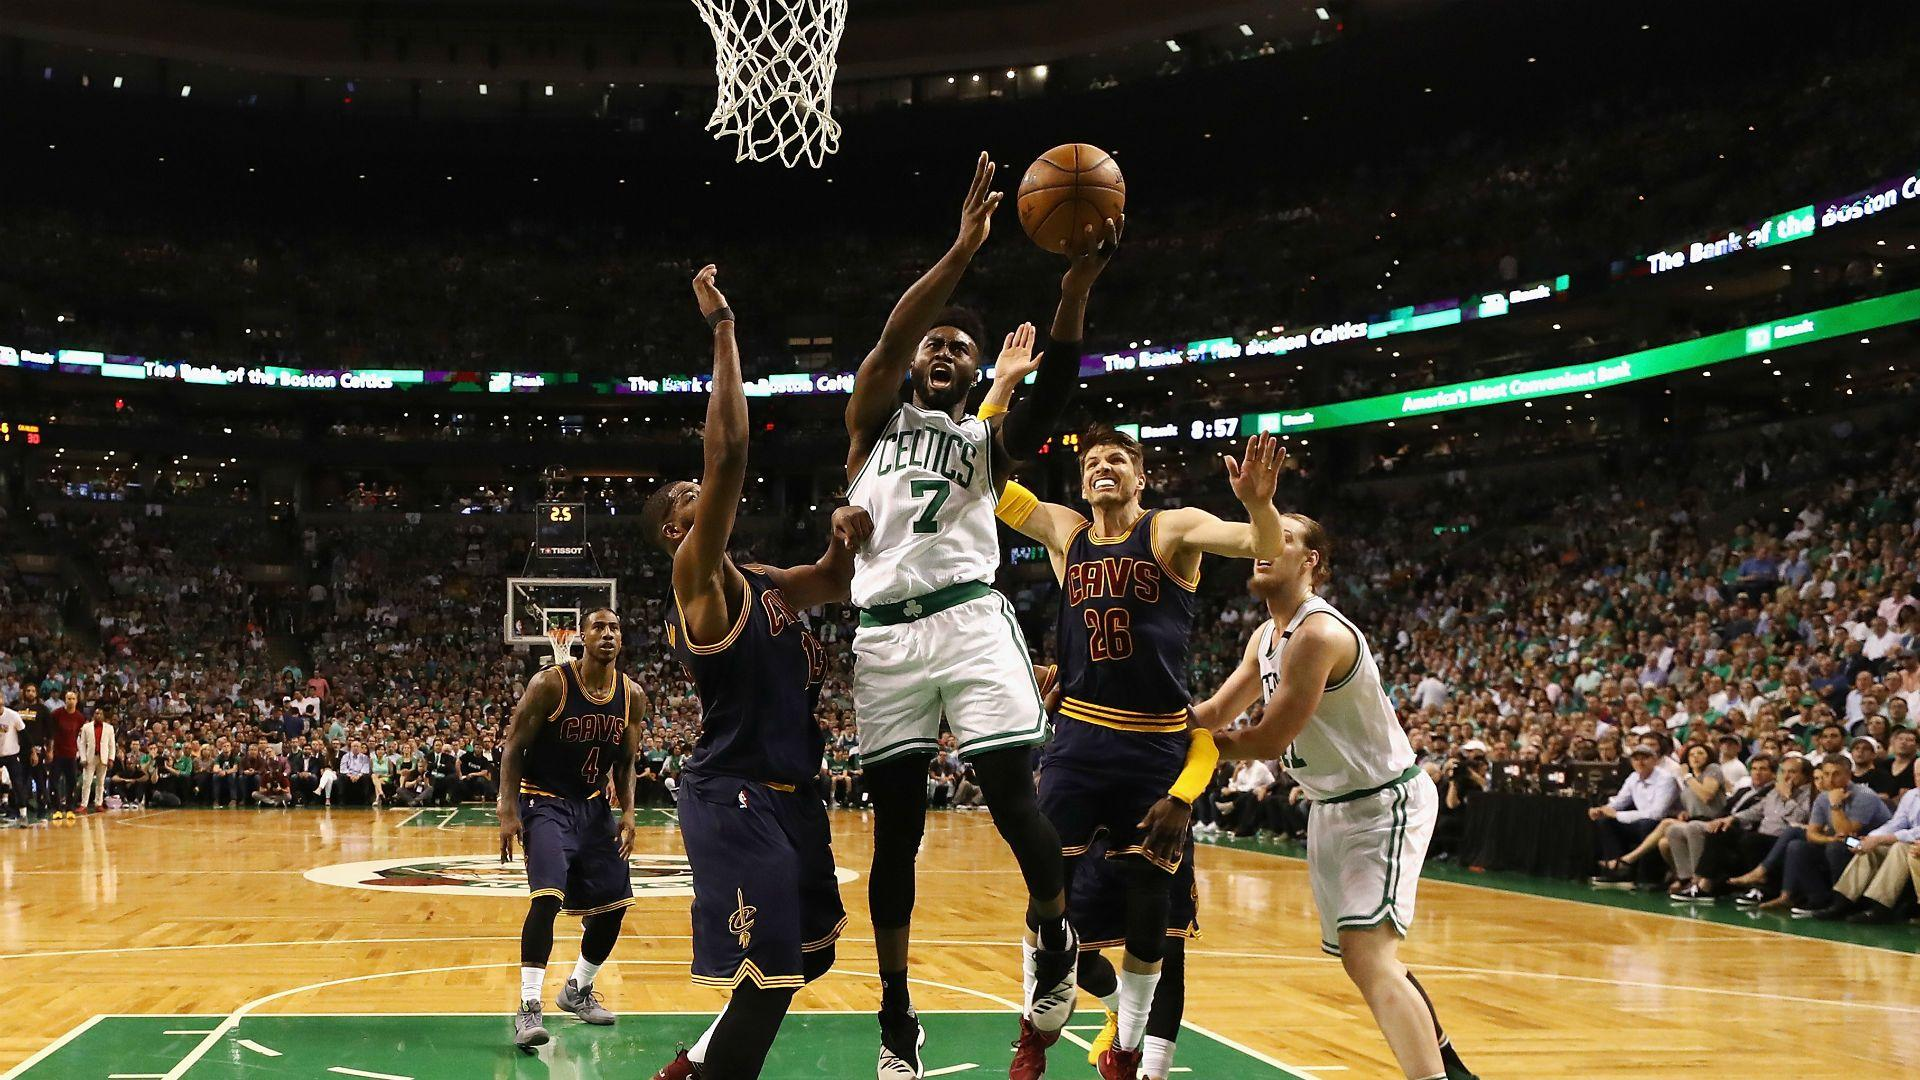 NBA playoffs 2017: Time for Celtics to take training wheels off